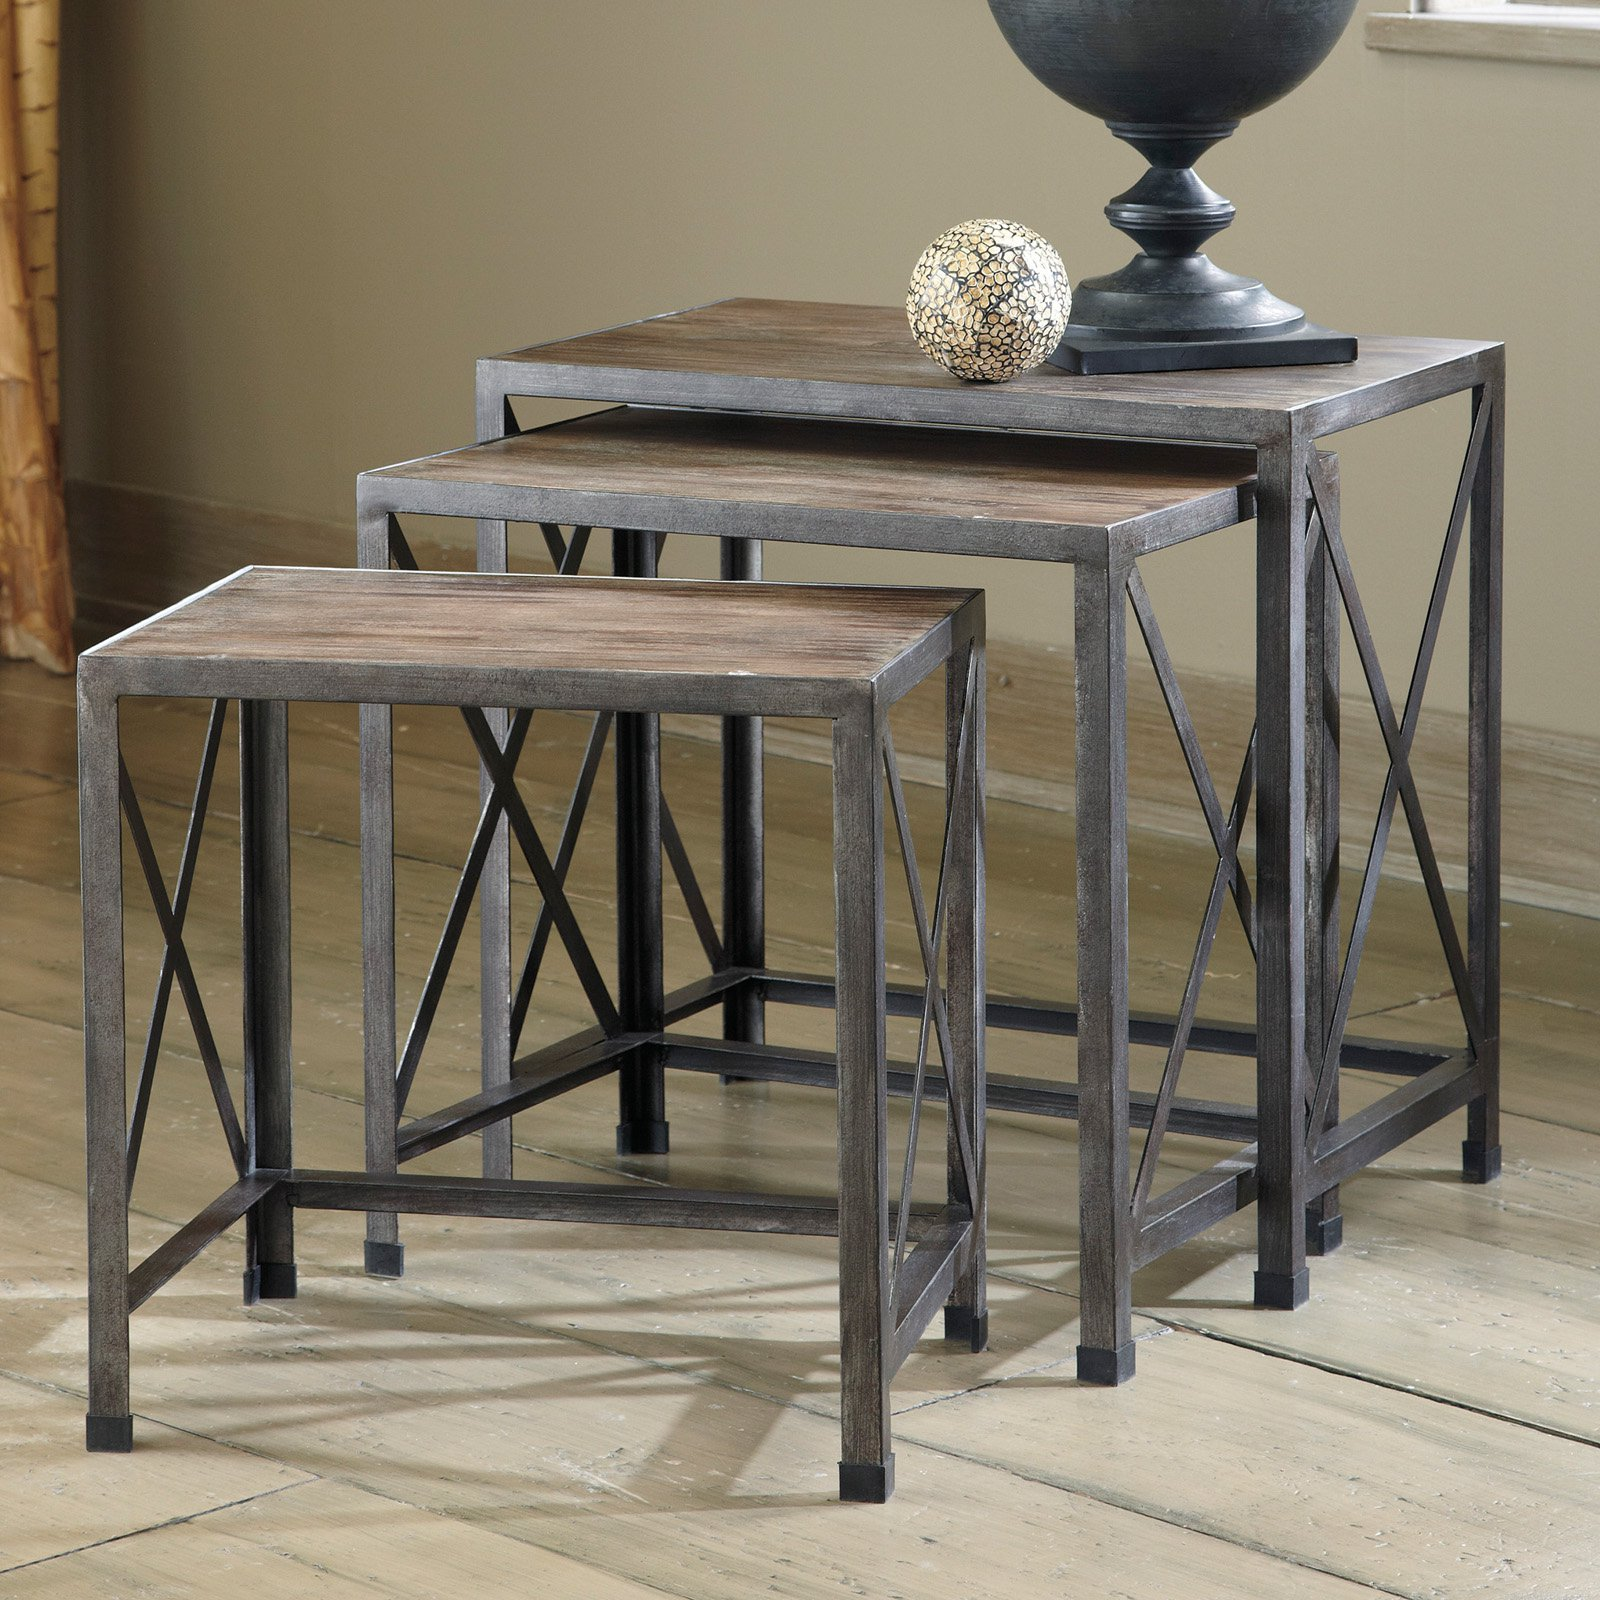 nesting accent tables round signature design ashley rustic accents graybrown knurl distressed pine end unique small verizon ellipsis gallerie coupon pottery barn occasional coffee